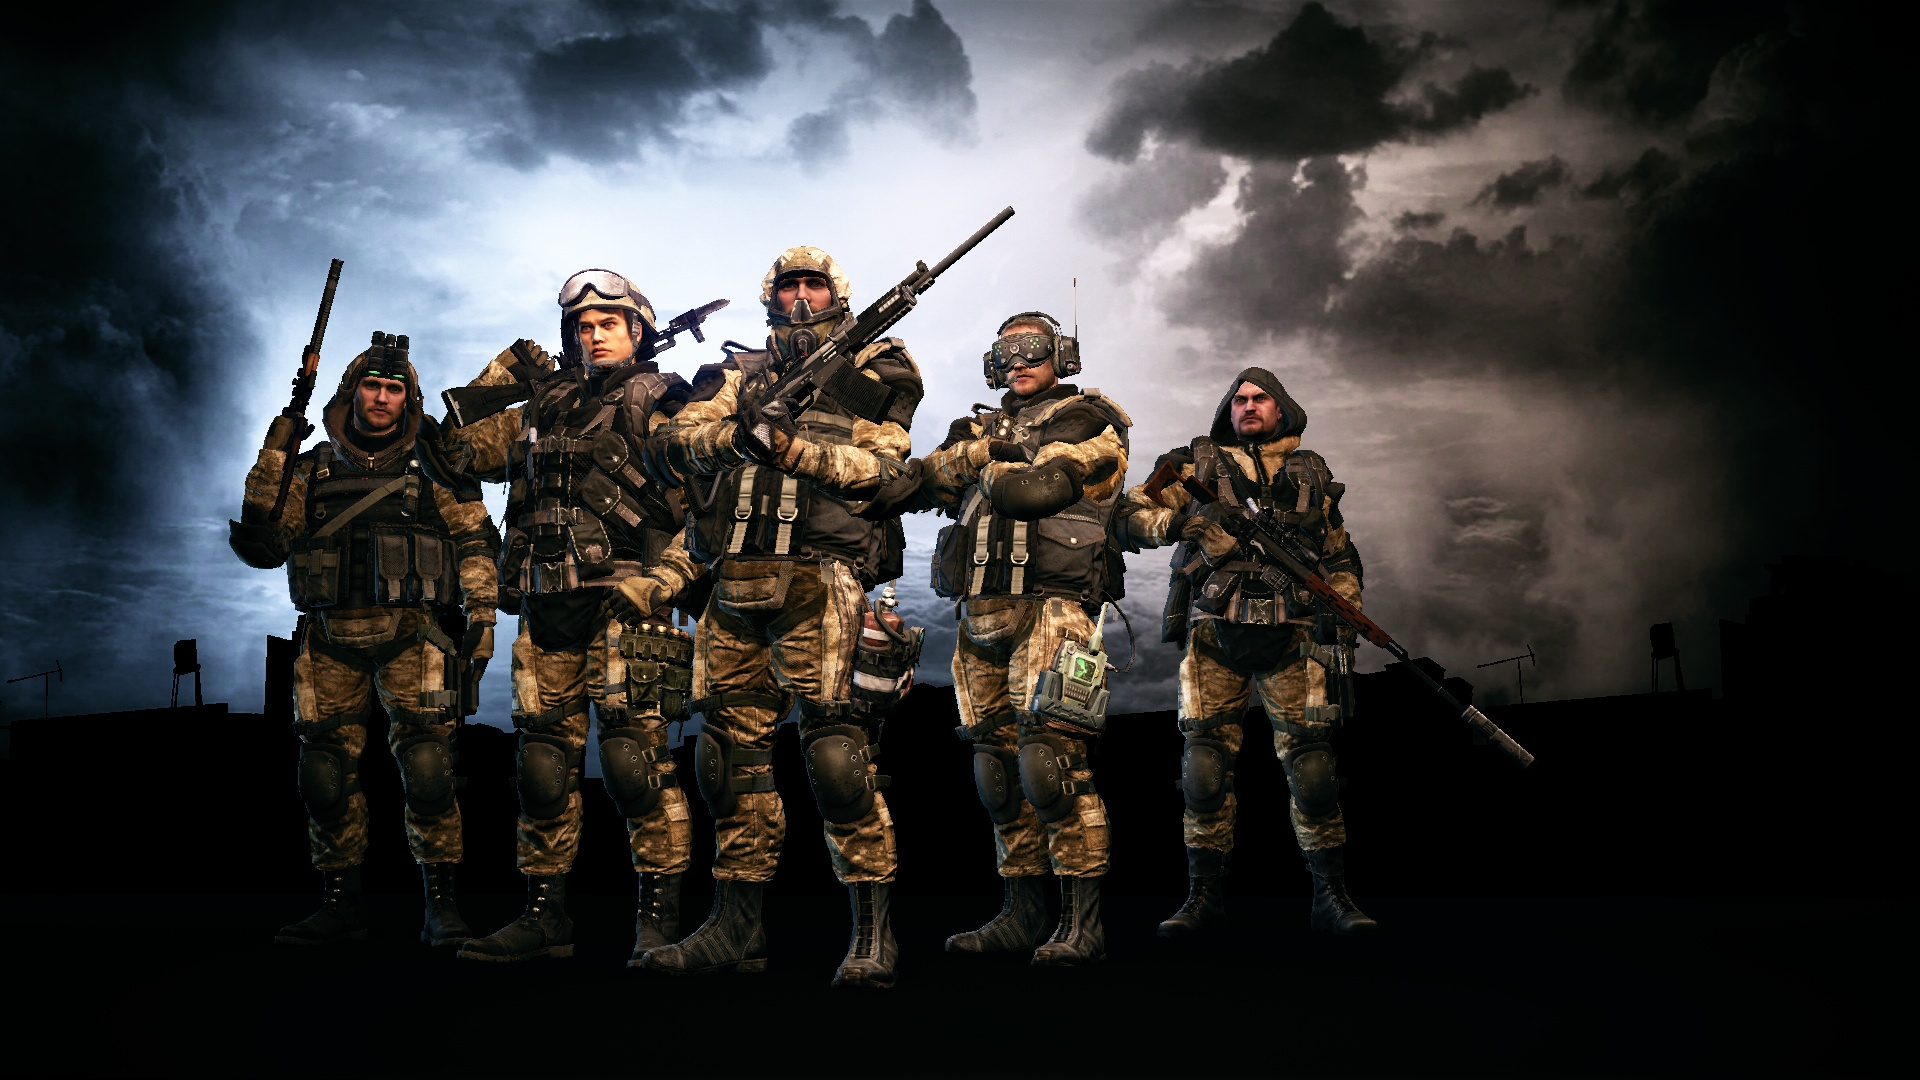 Warface Full HD Wallpaper And Background Image